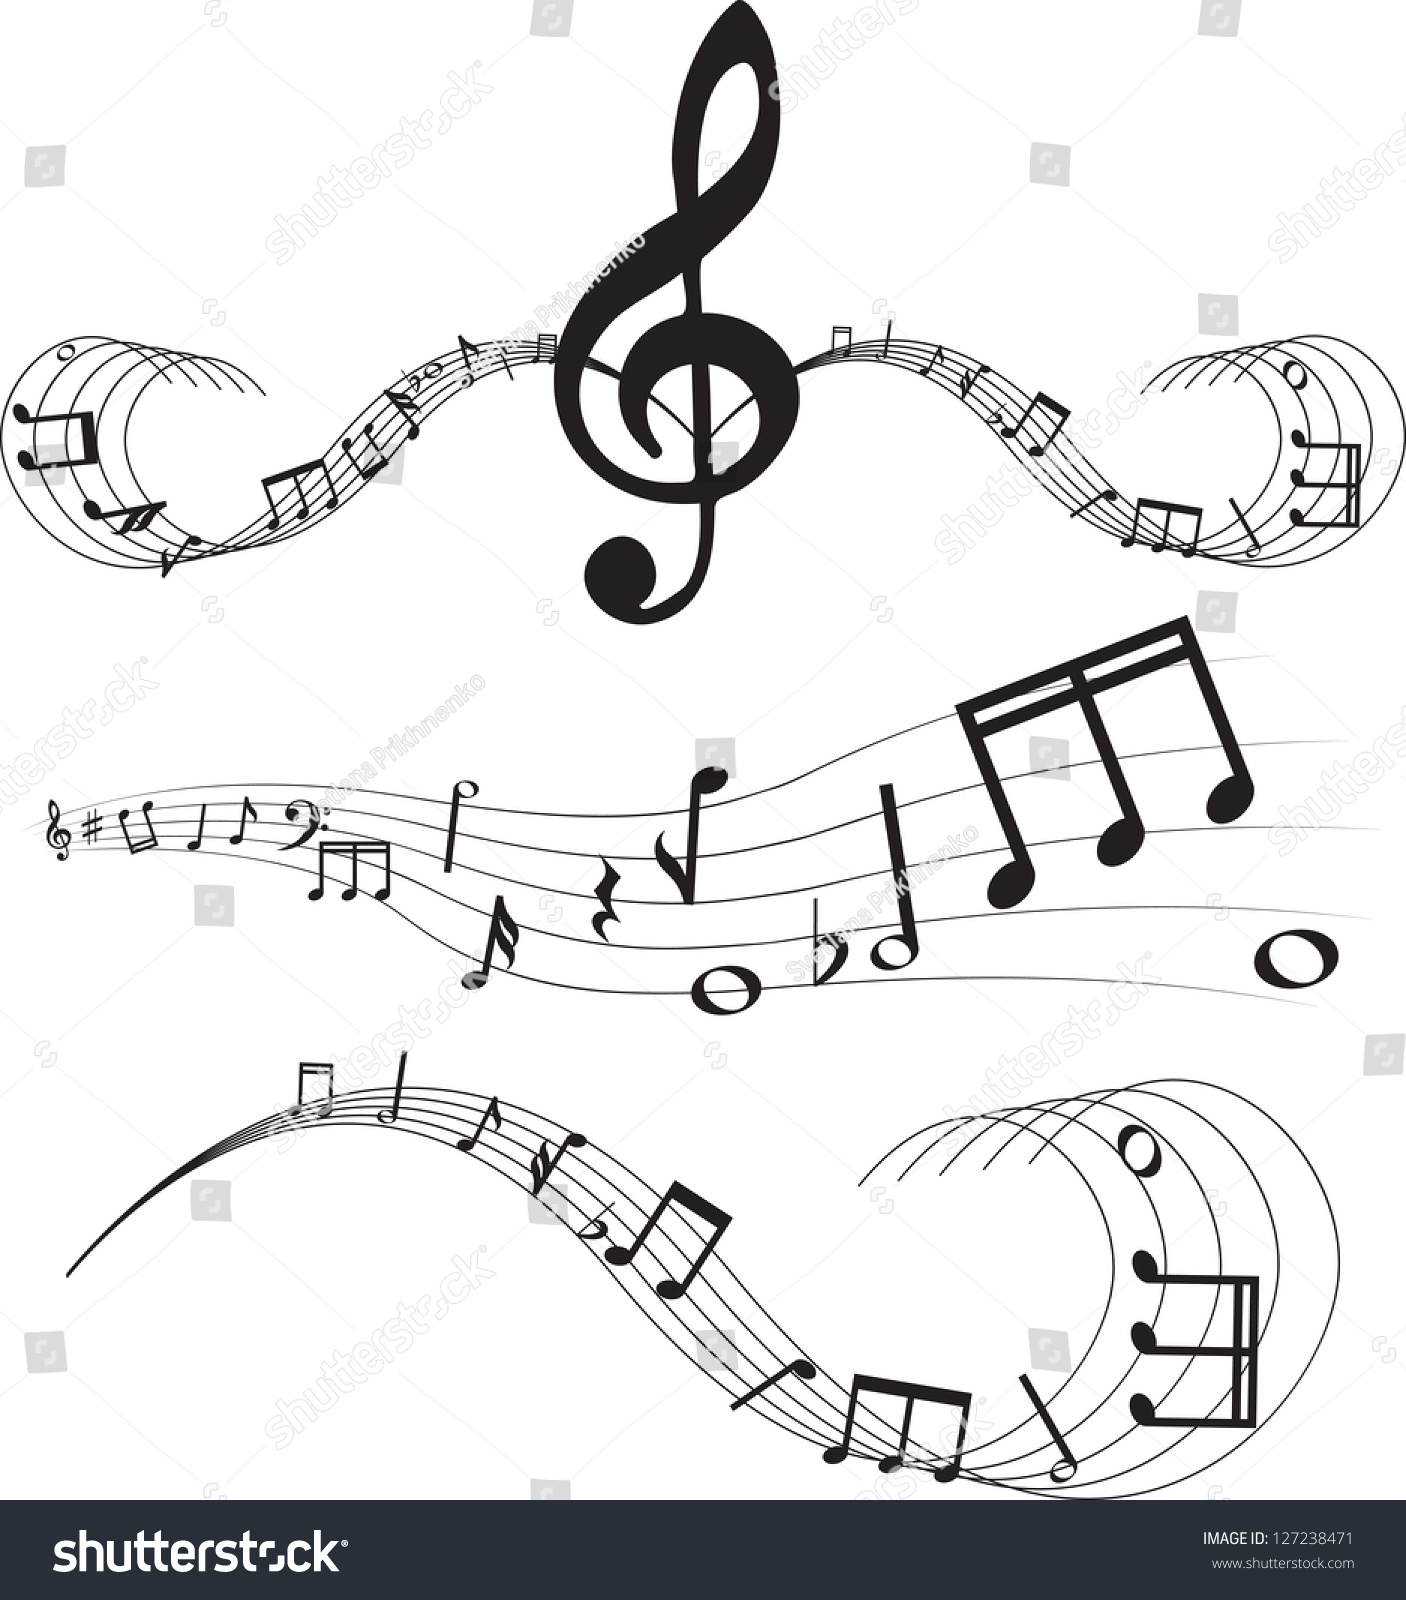 set music notes on staves stock vector 127238471 shutterstock